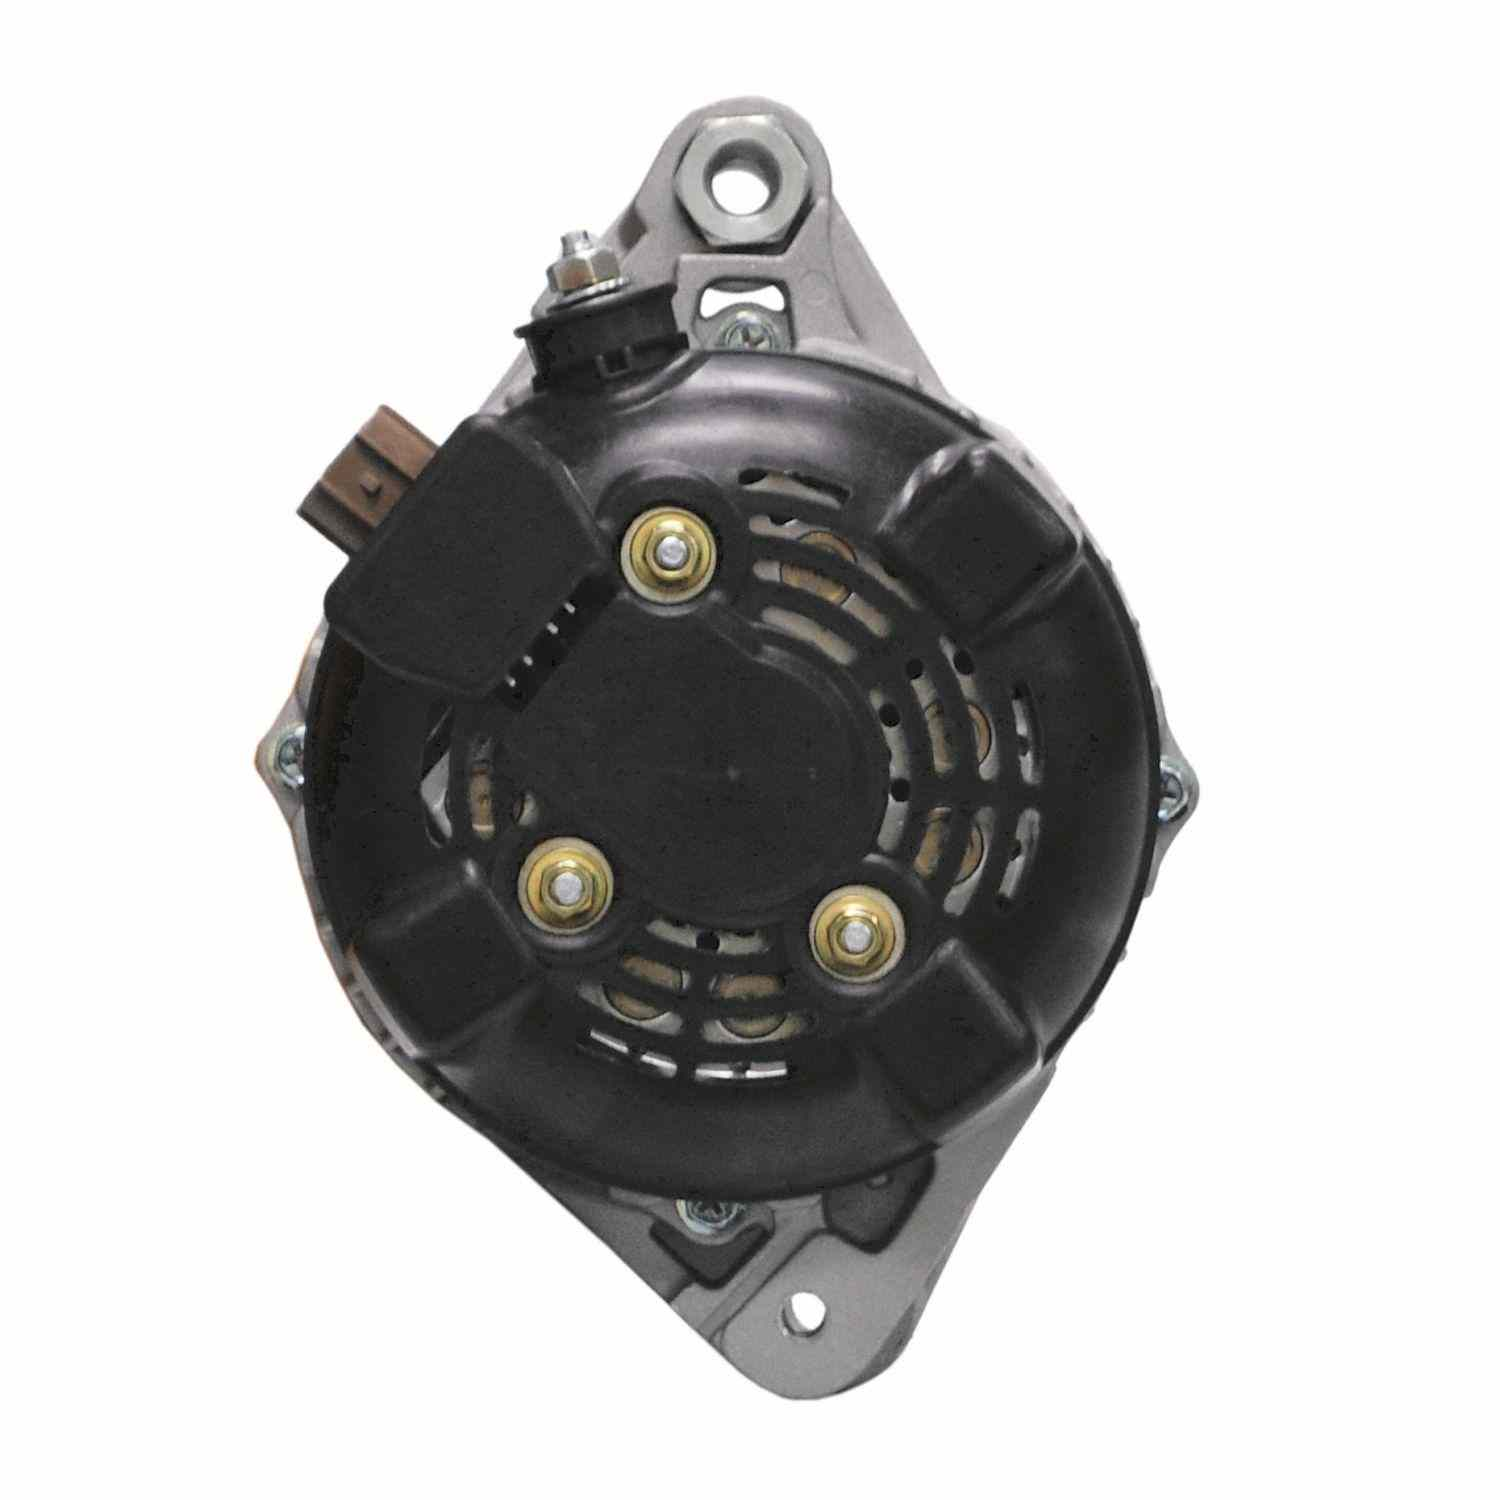 ACDELCO GOLD/PROFESSIONAL - Reman Alternator - DCC 334-2689A